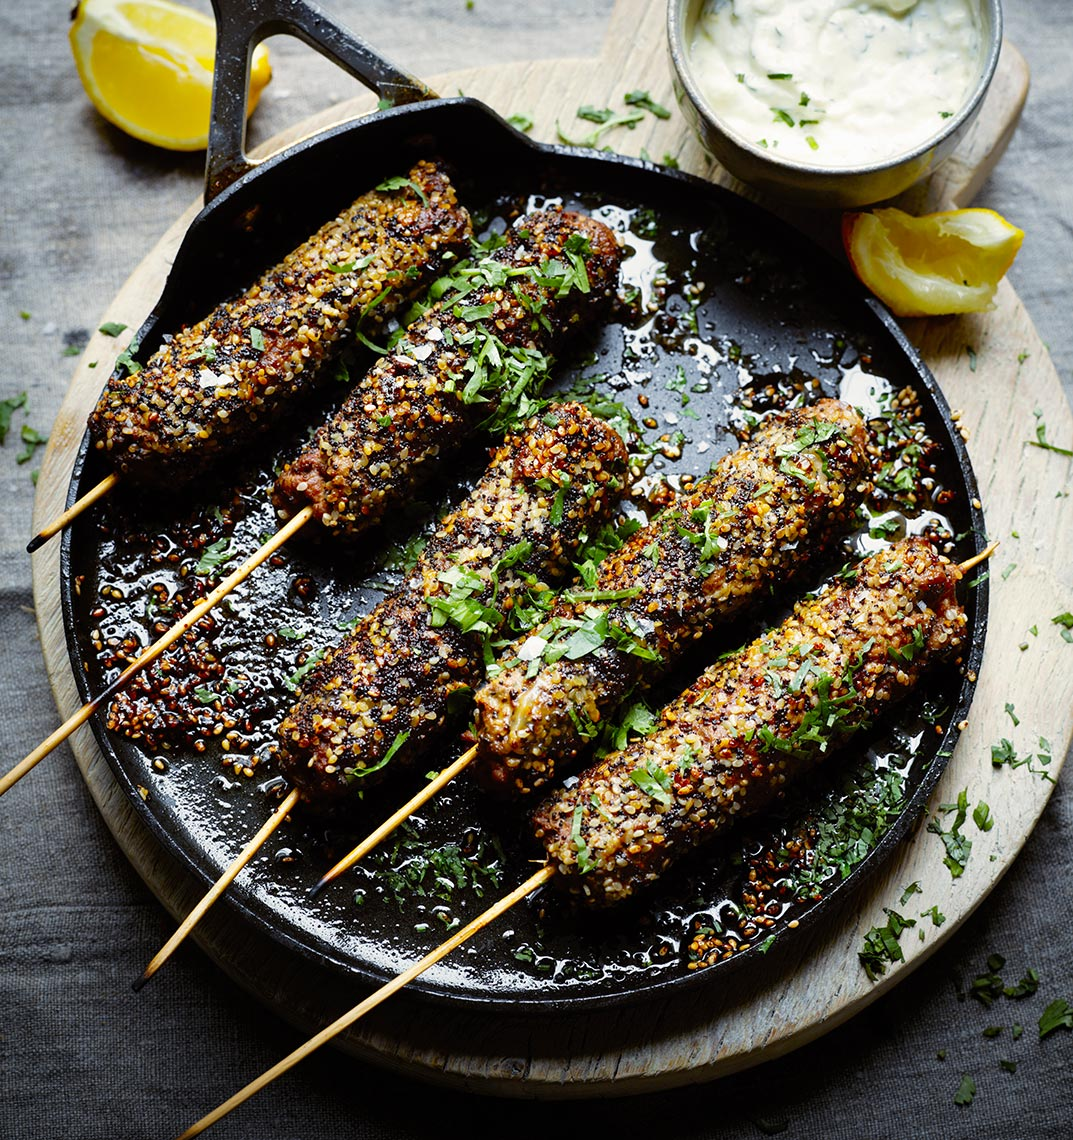 Cumin kebabs | Colin Campbell - Food Photographer